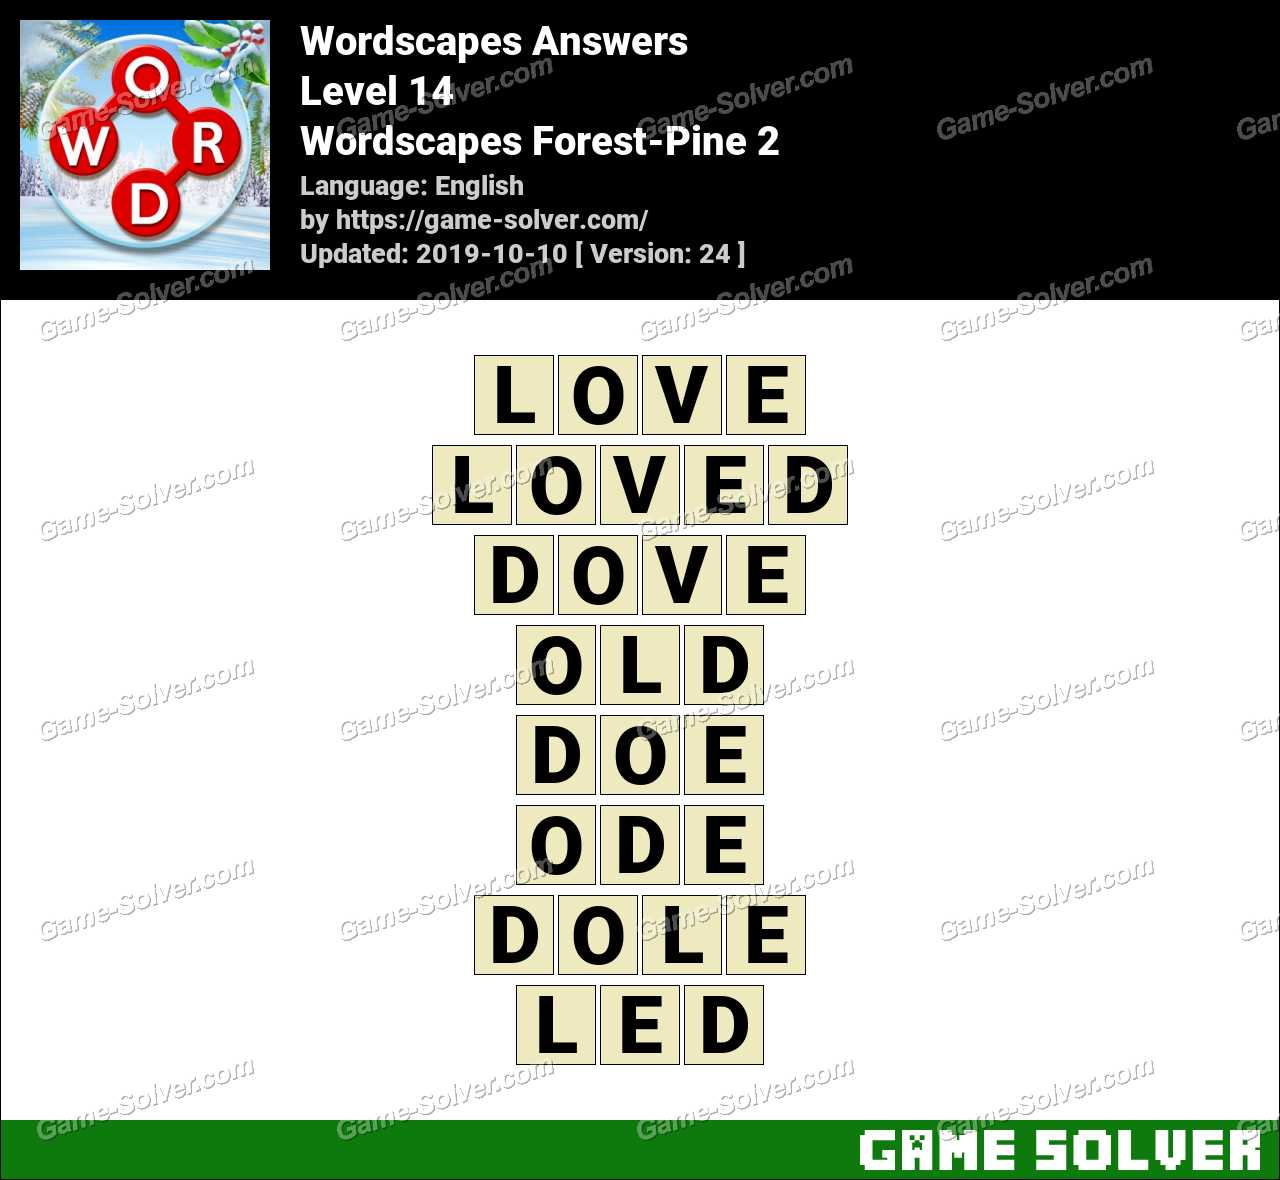 Wordscapes Forest-Pine 2 Answers